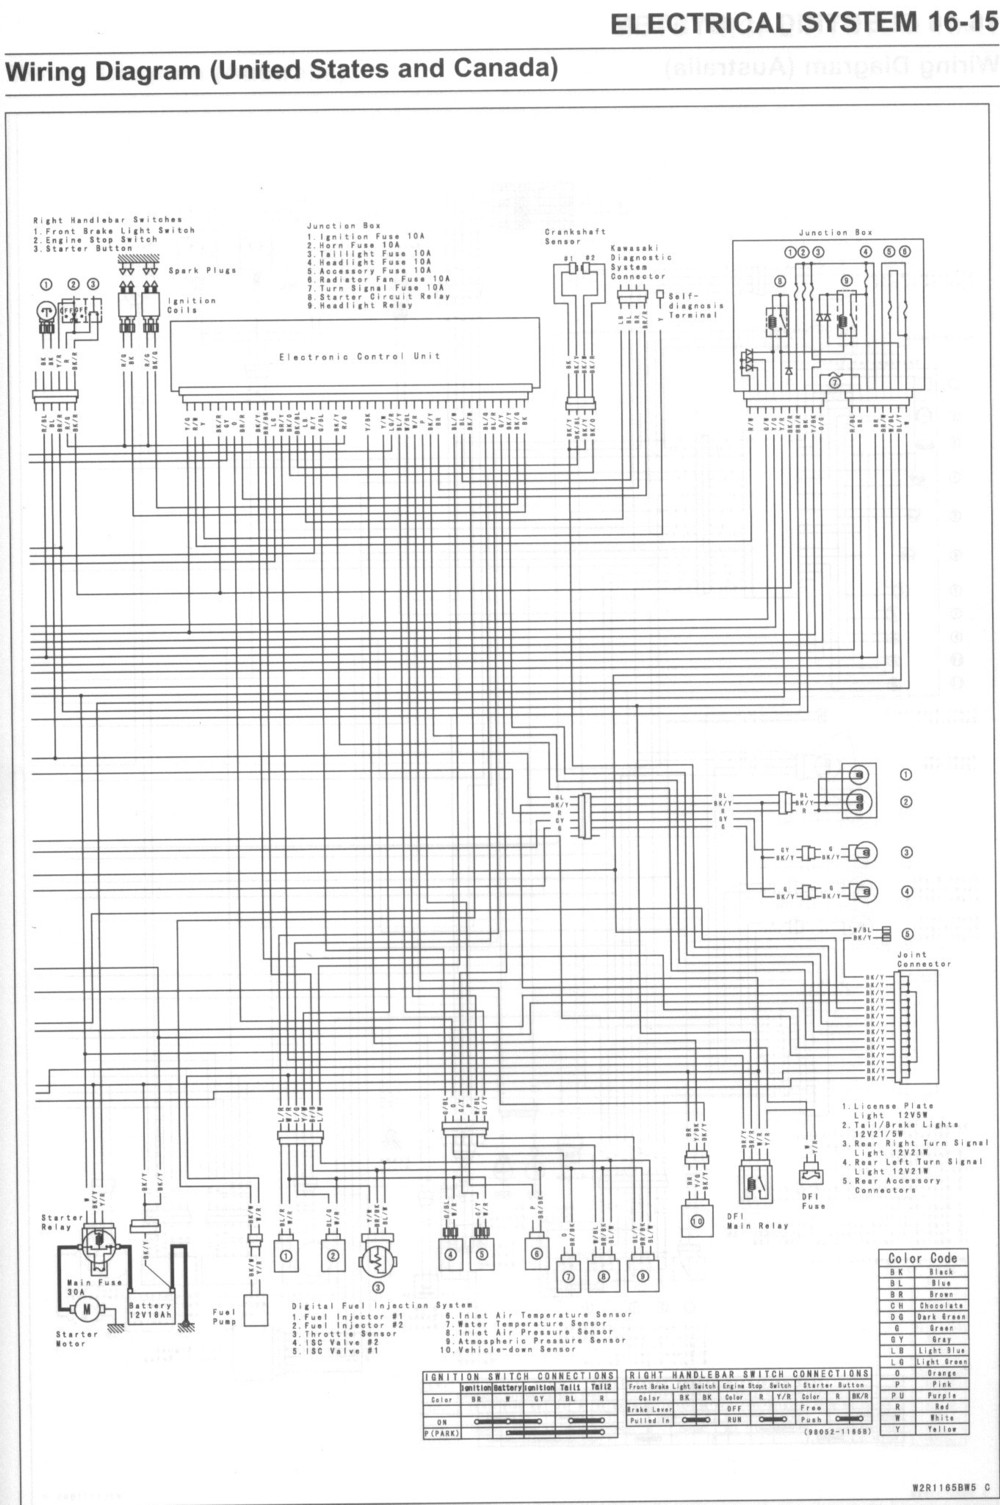 Wiring Schematic For 2001 Suzuki Marauder 800 45 Diagram 2000 Intruder Vn1600a1 Pg2 Vulcan Diagrams Gadgets Fixit Page Bobber At Cita